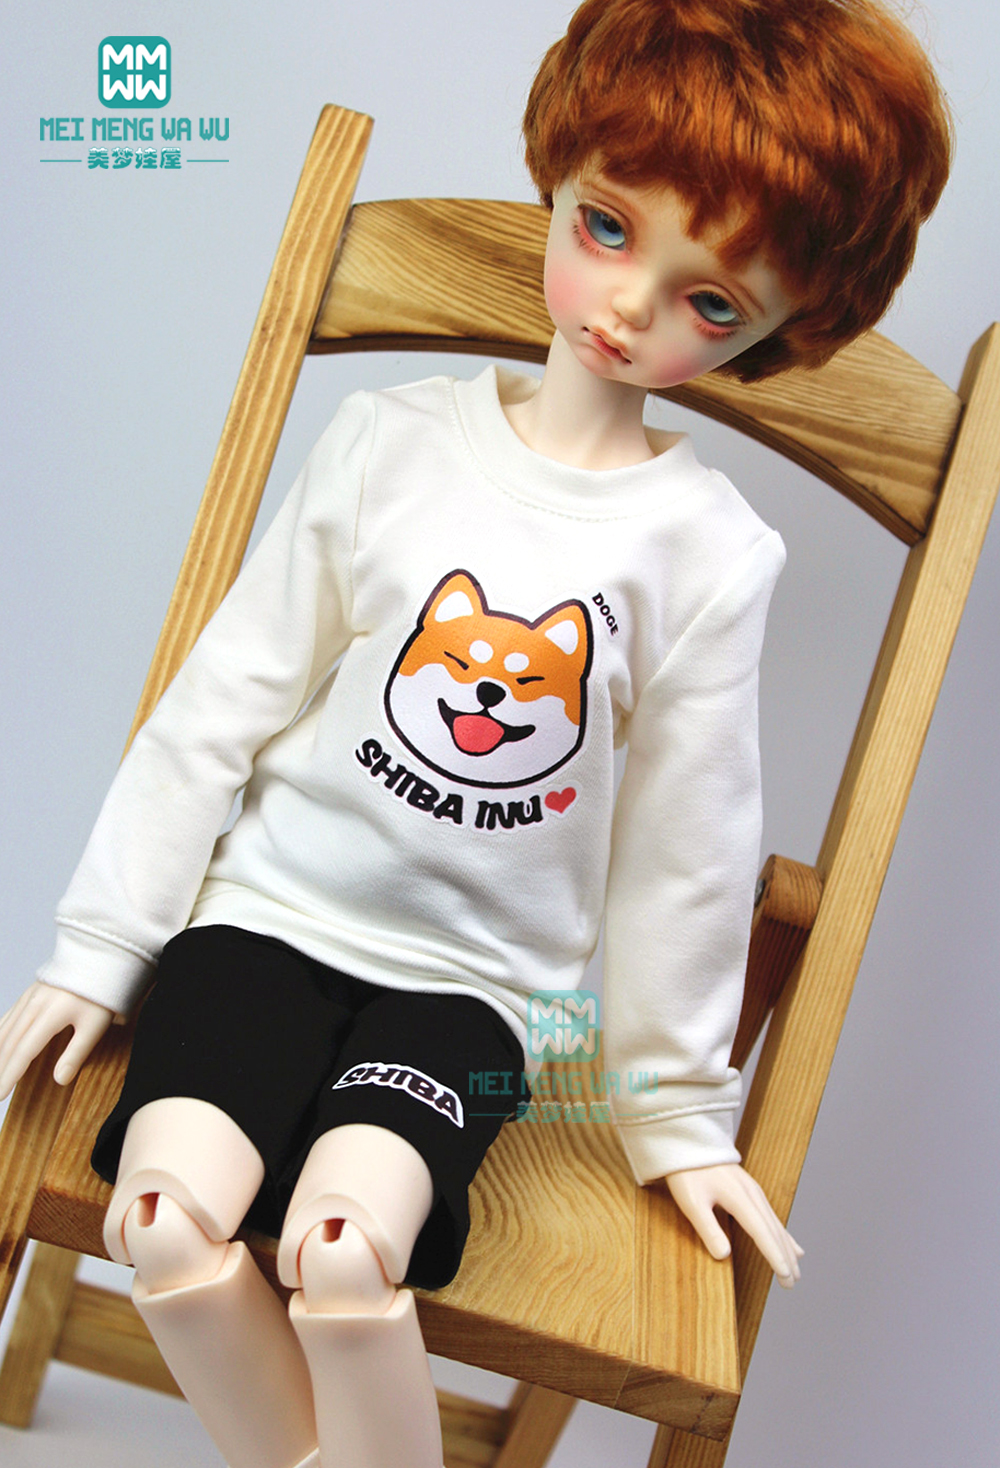 BJD Accessories Doll Clothes For 1/4 BJD MSD Doll Fashion Sweatshirts, Jackets, Shorts